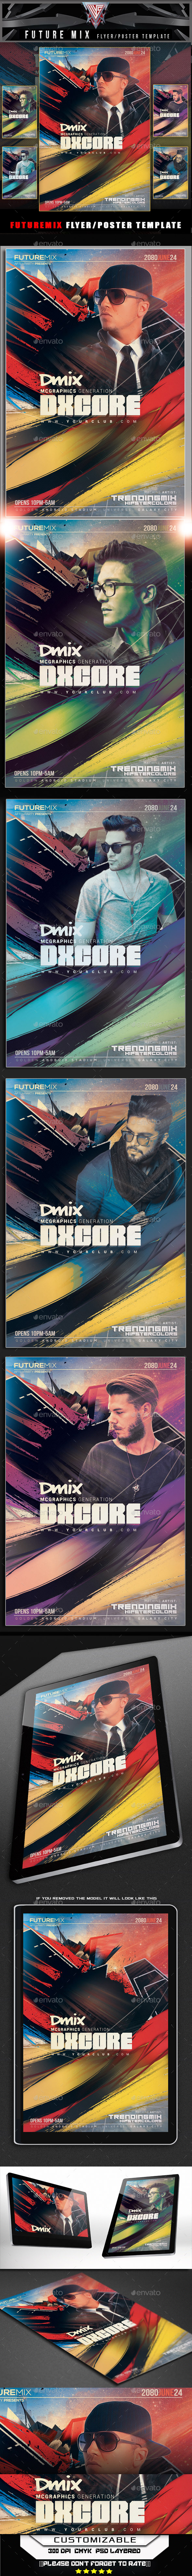 Future Mix Flyer Template